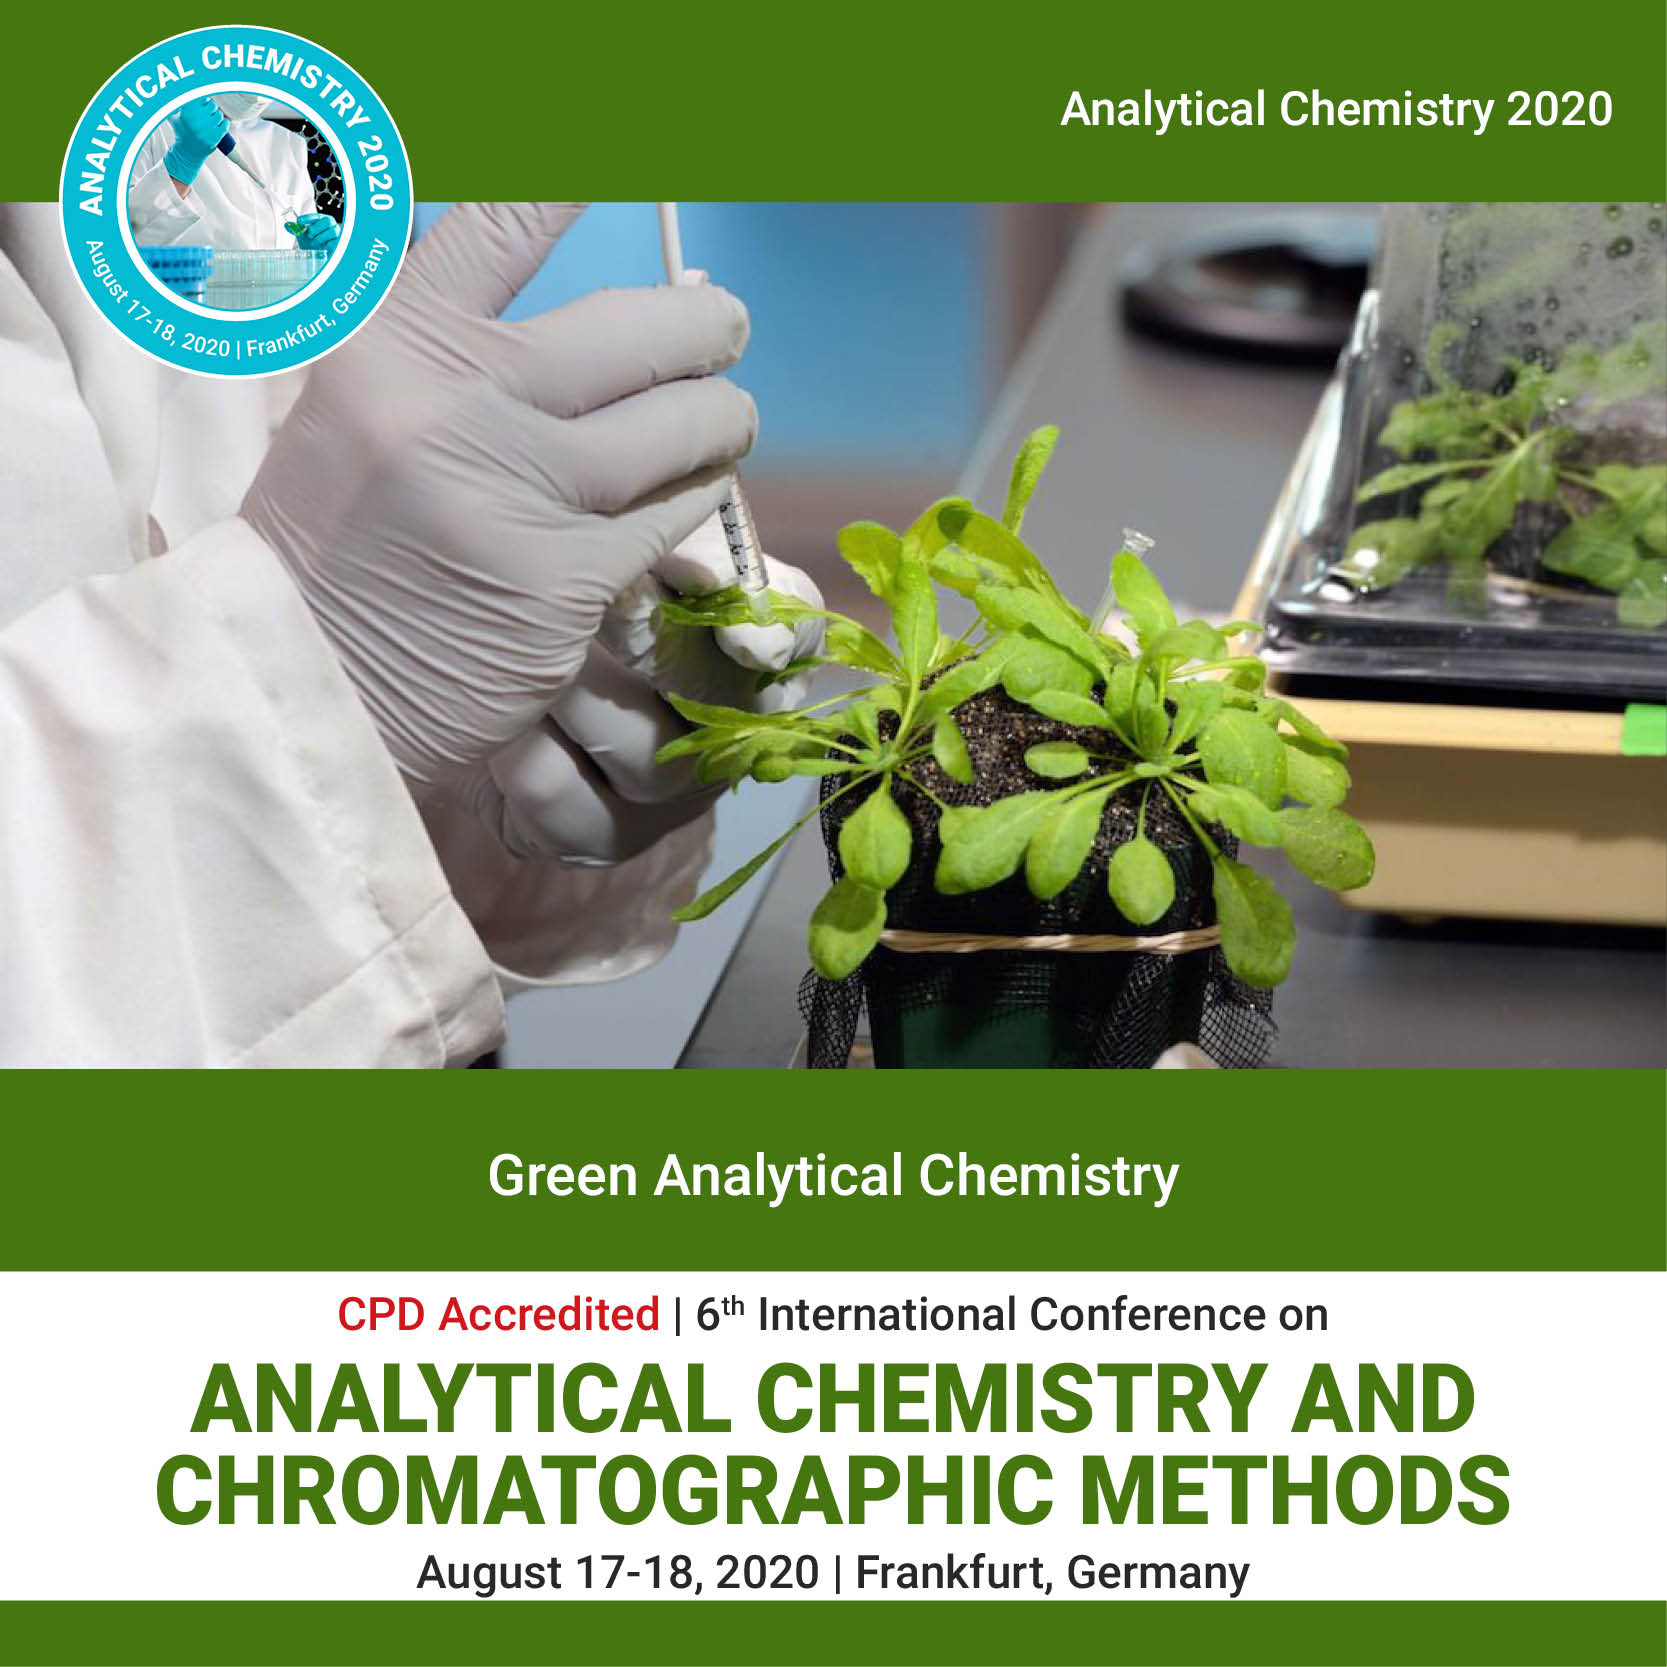 Green Analytical Chemistry Photo